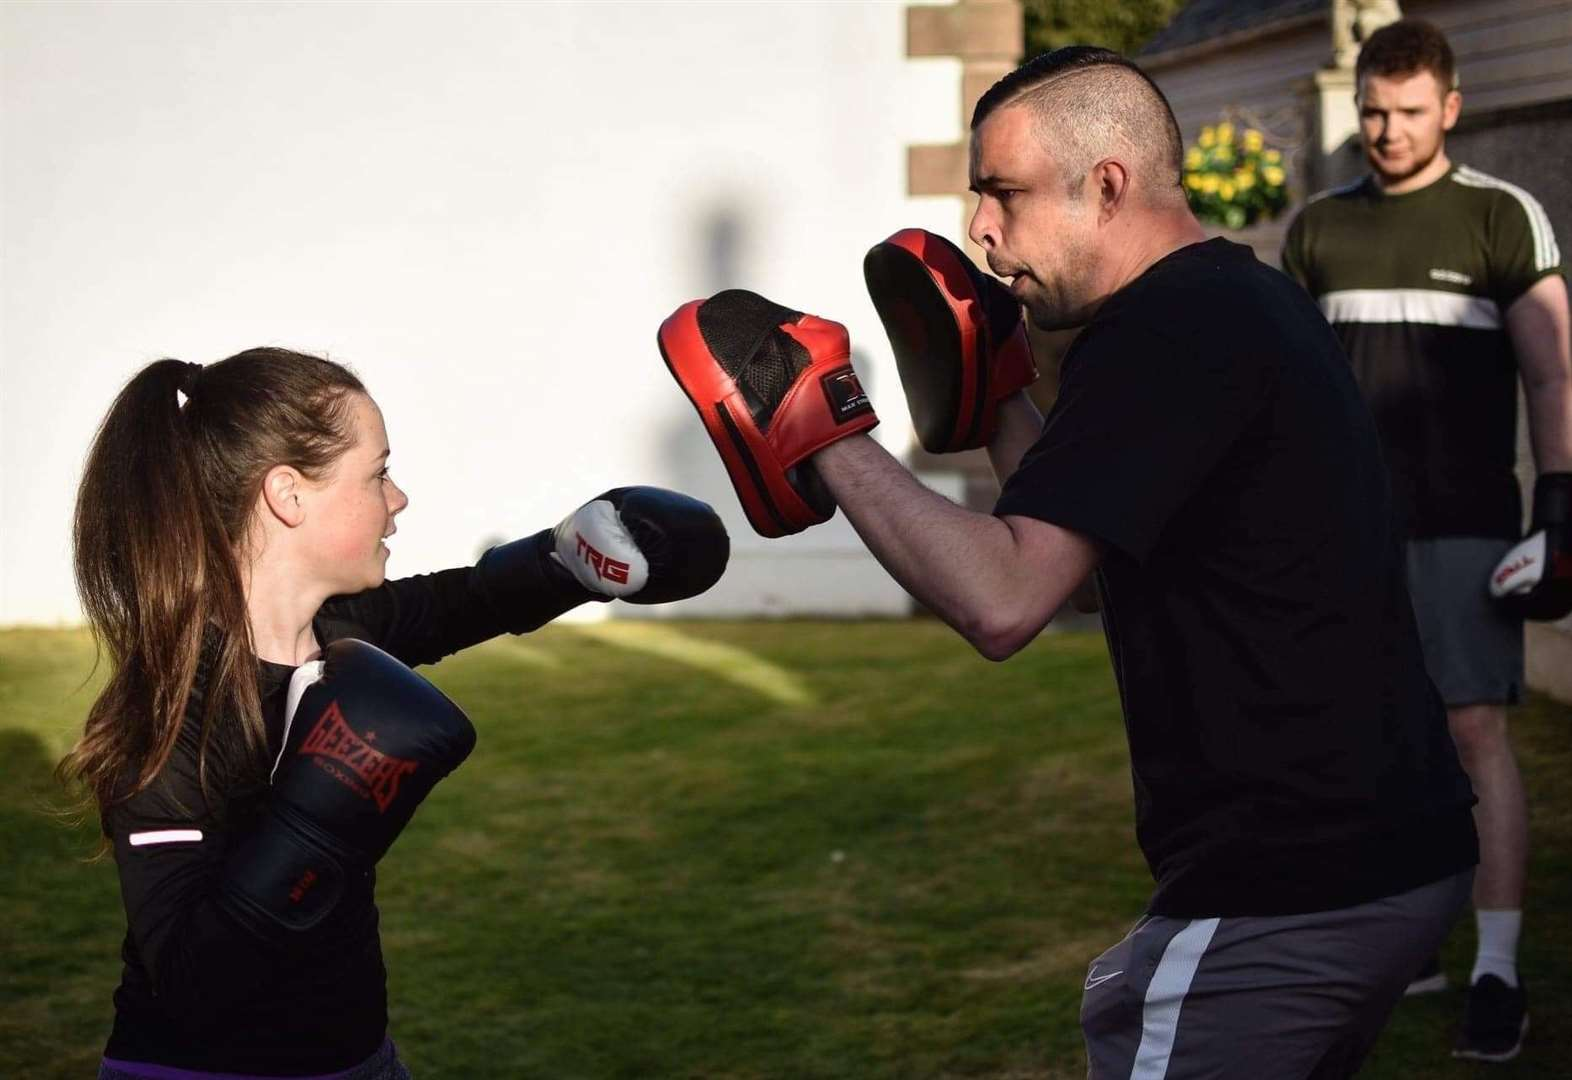 New boxing club wants to reach out